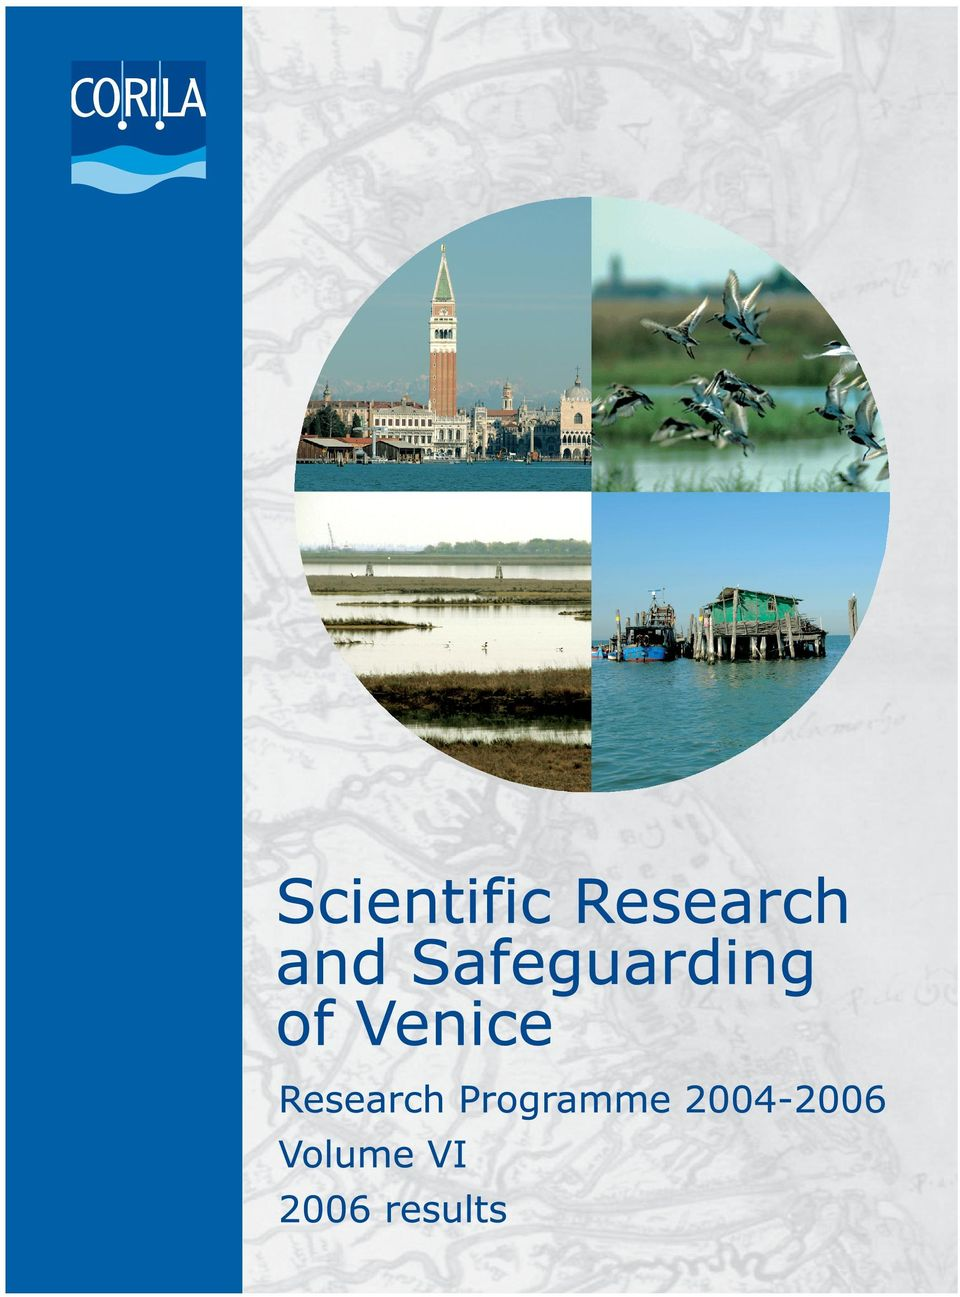 CORILA (Consortium for Coordination of Research Activities Concerning the Venice Lagoon System) is an association of Ca' Foscari University of Venice, the University IUAV